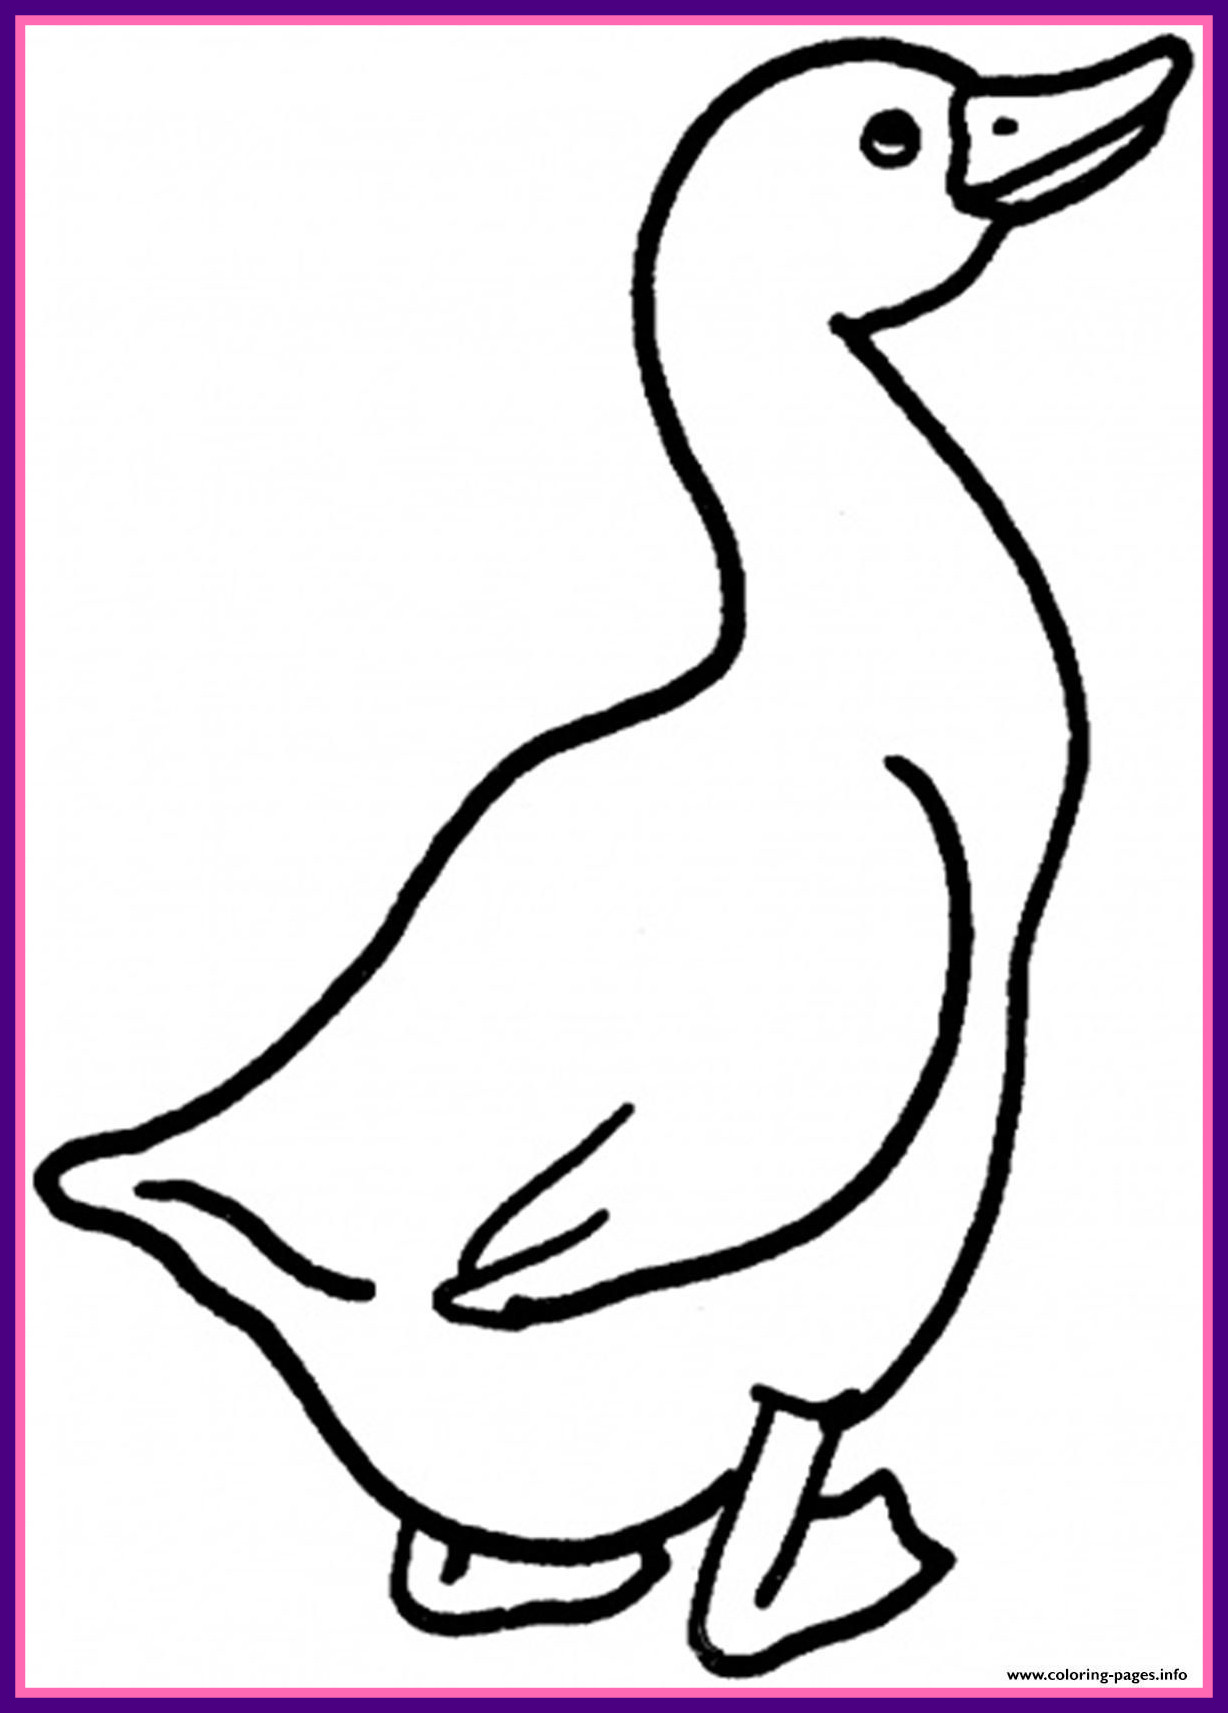 Knuffle Bunny Clipart At Getdrawings